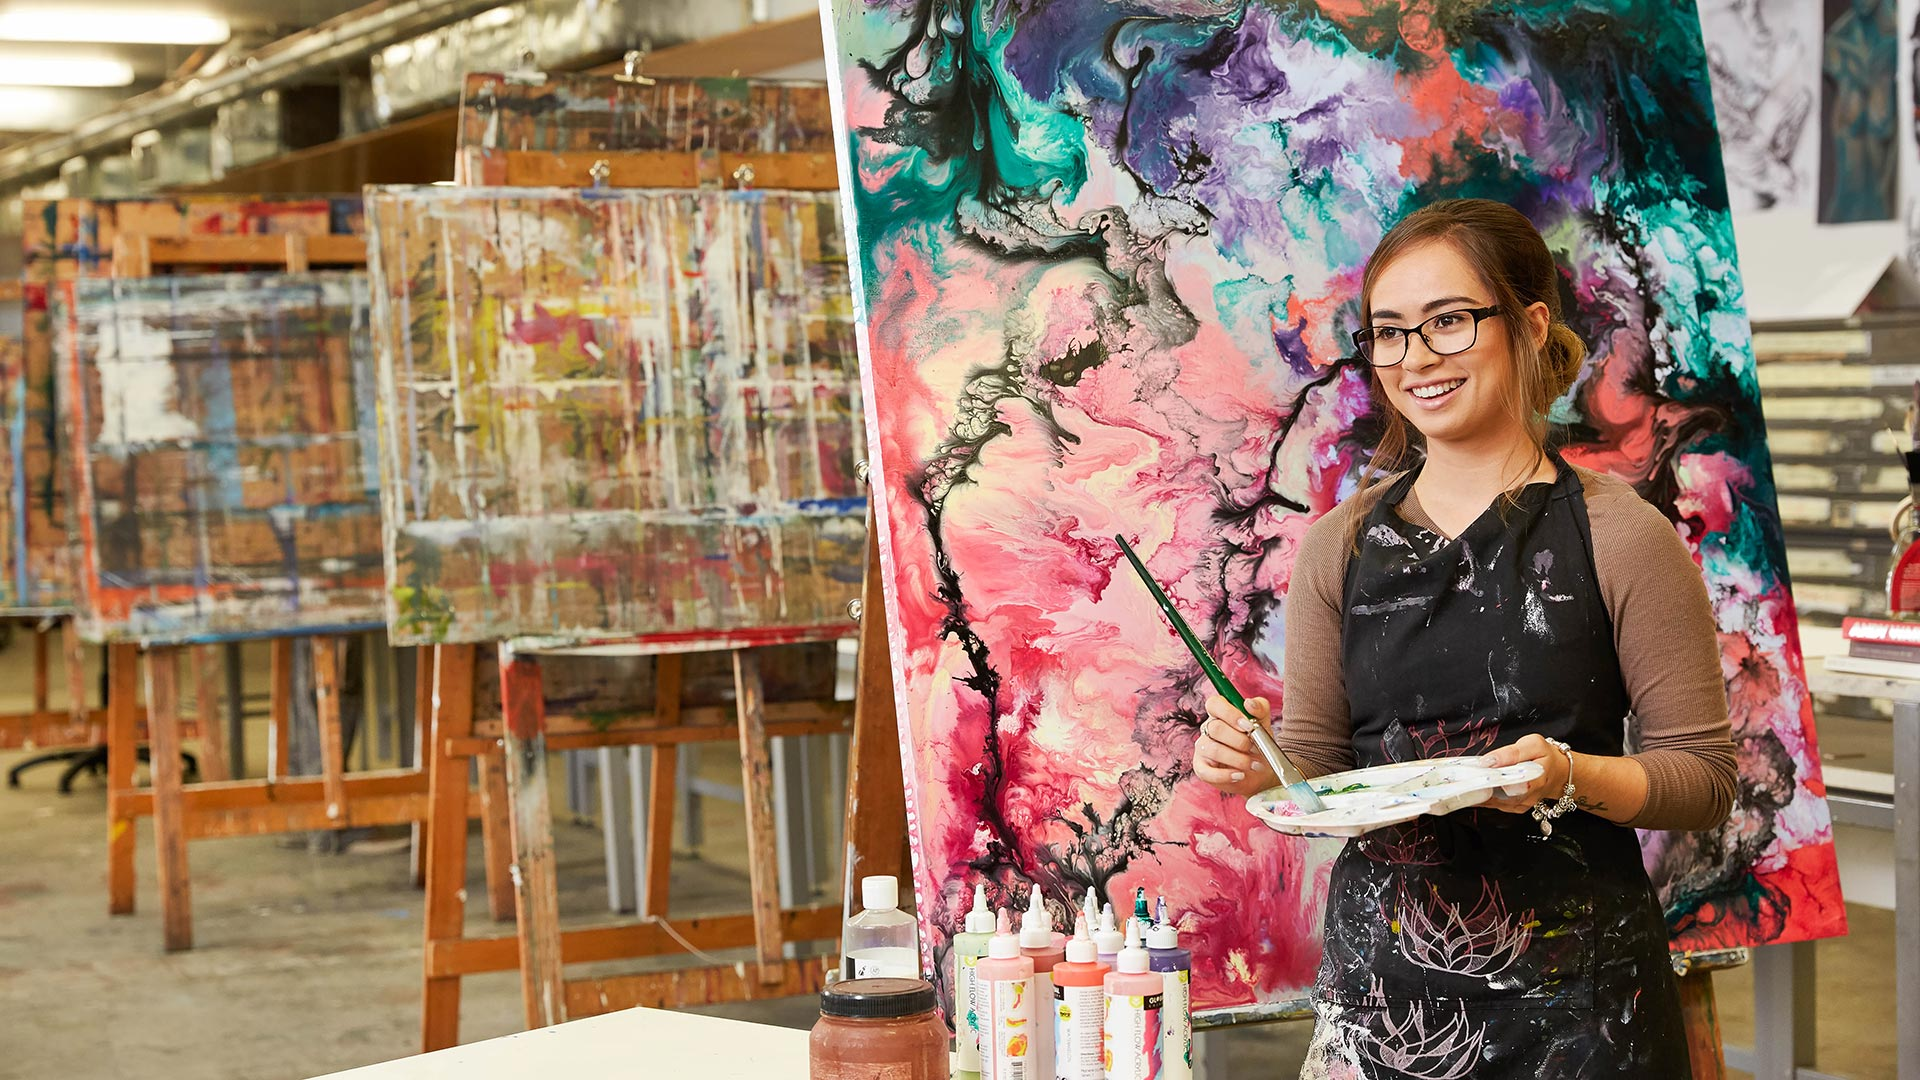 study visual arts at tafe queensland